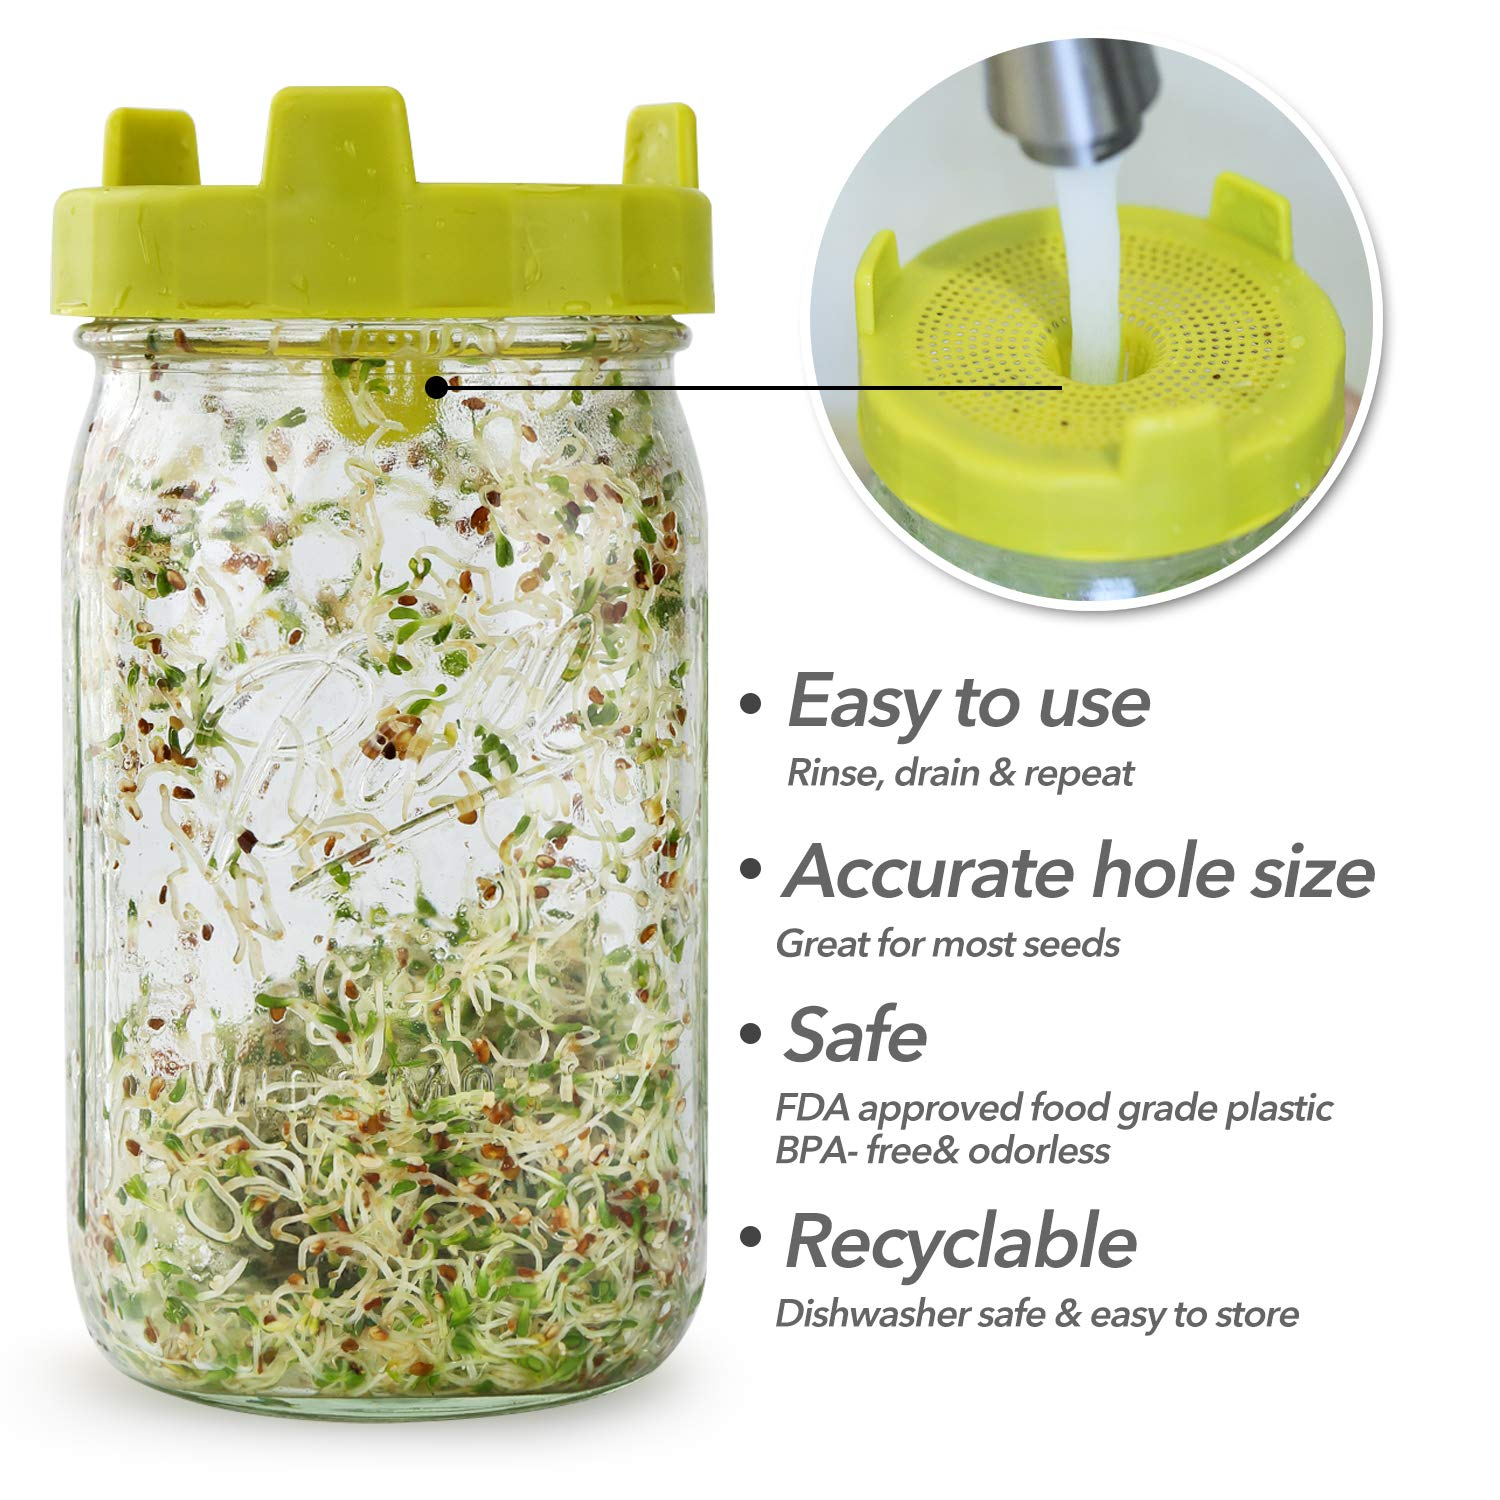 Soligt Easy Rinse & Drain Sprouting Lids for Wide Mouth Mason Jars – 6 Pack by SOLIGT (Image #3)